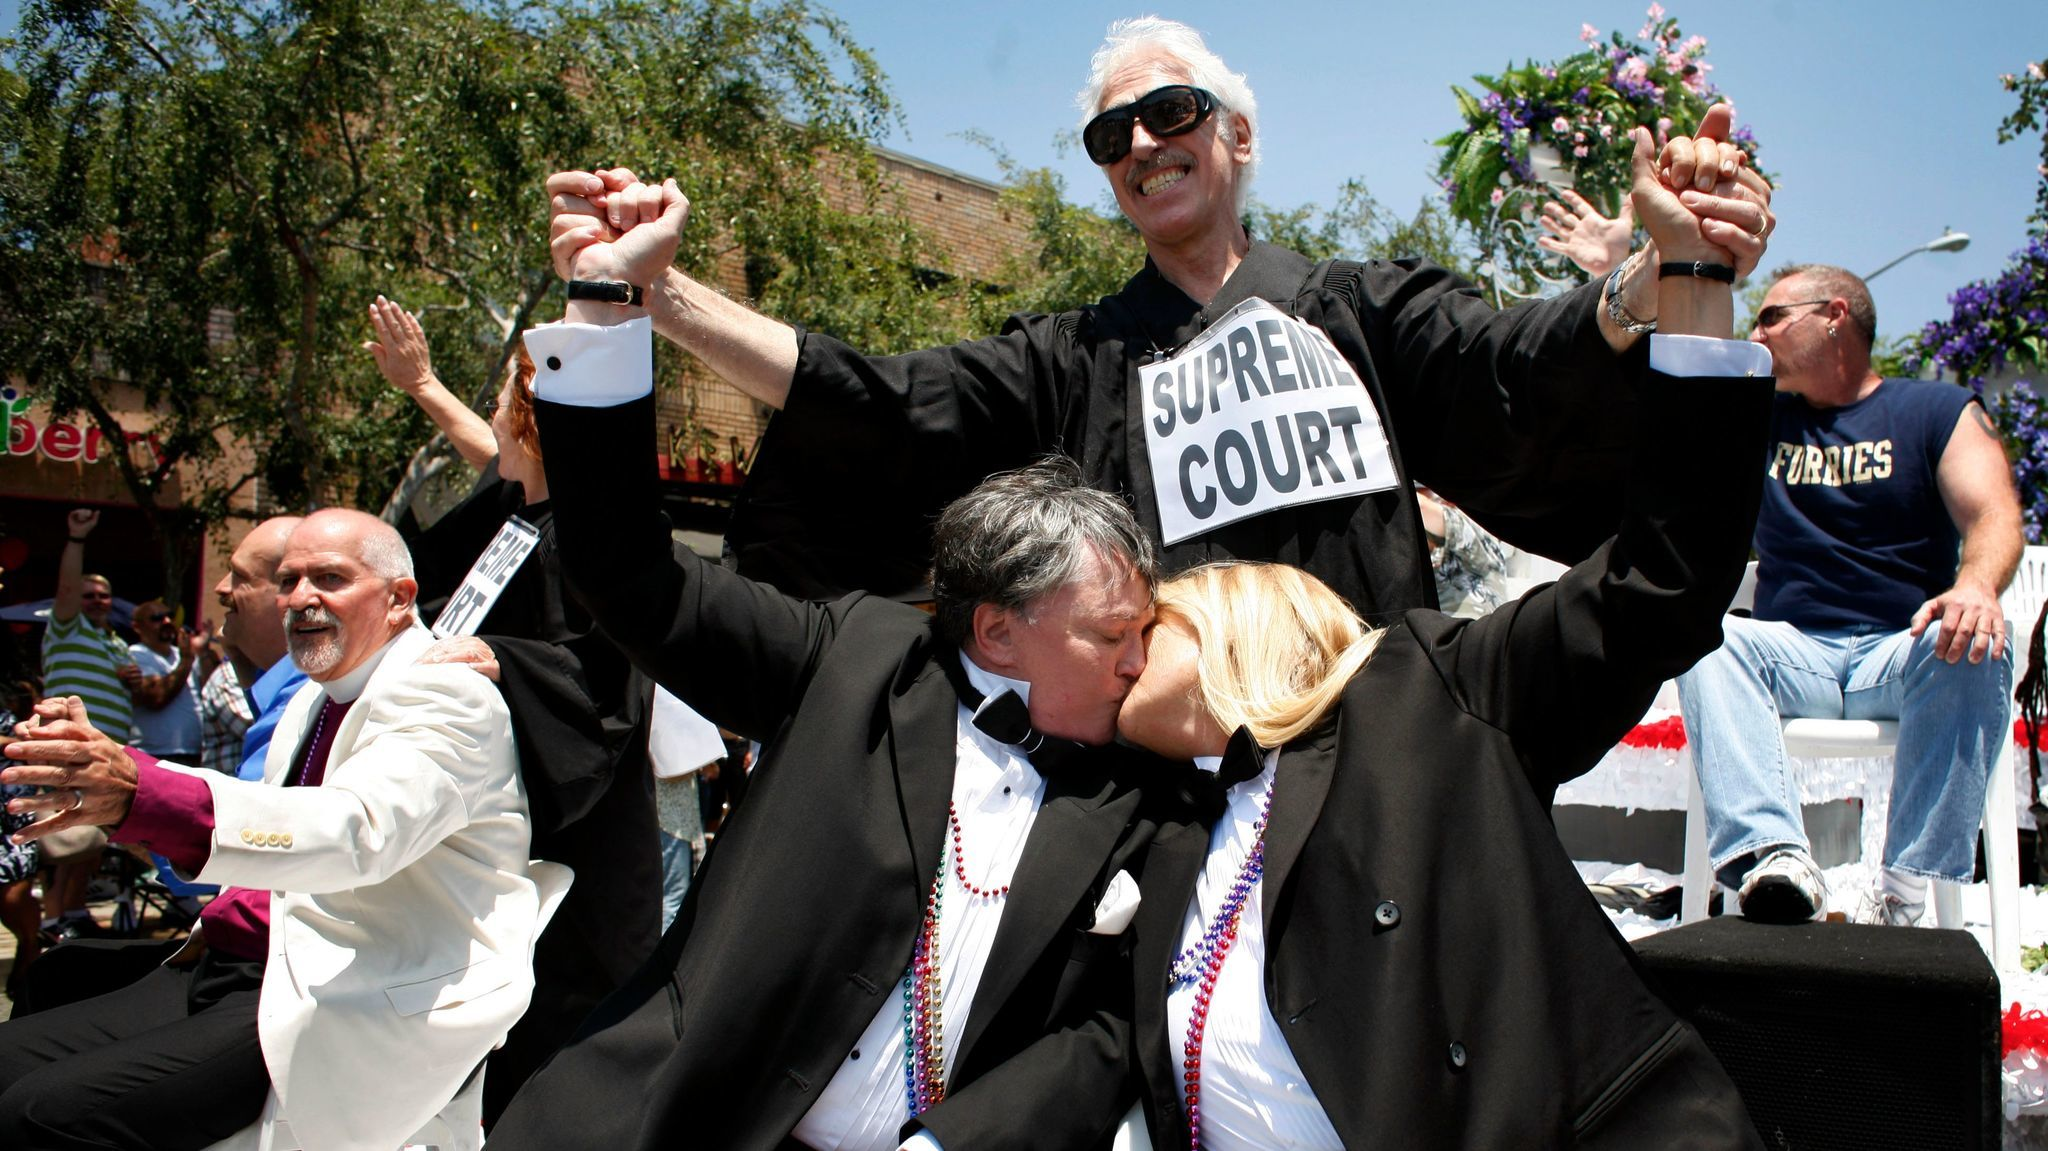 Robin Tyler and Diane Olsen celebrate the Supreme Court decision to legalize gay marriage by riding on a wedding float together on June 8, 2008.